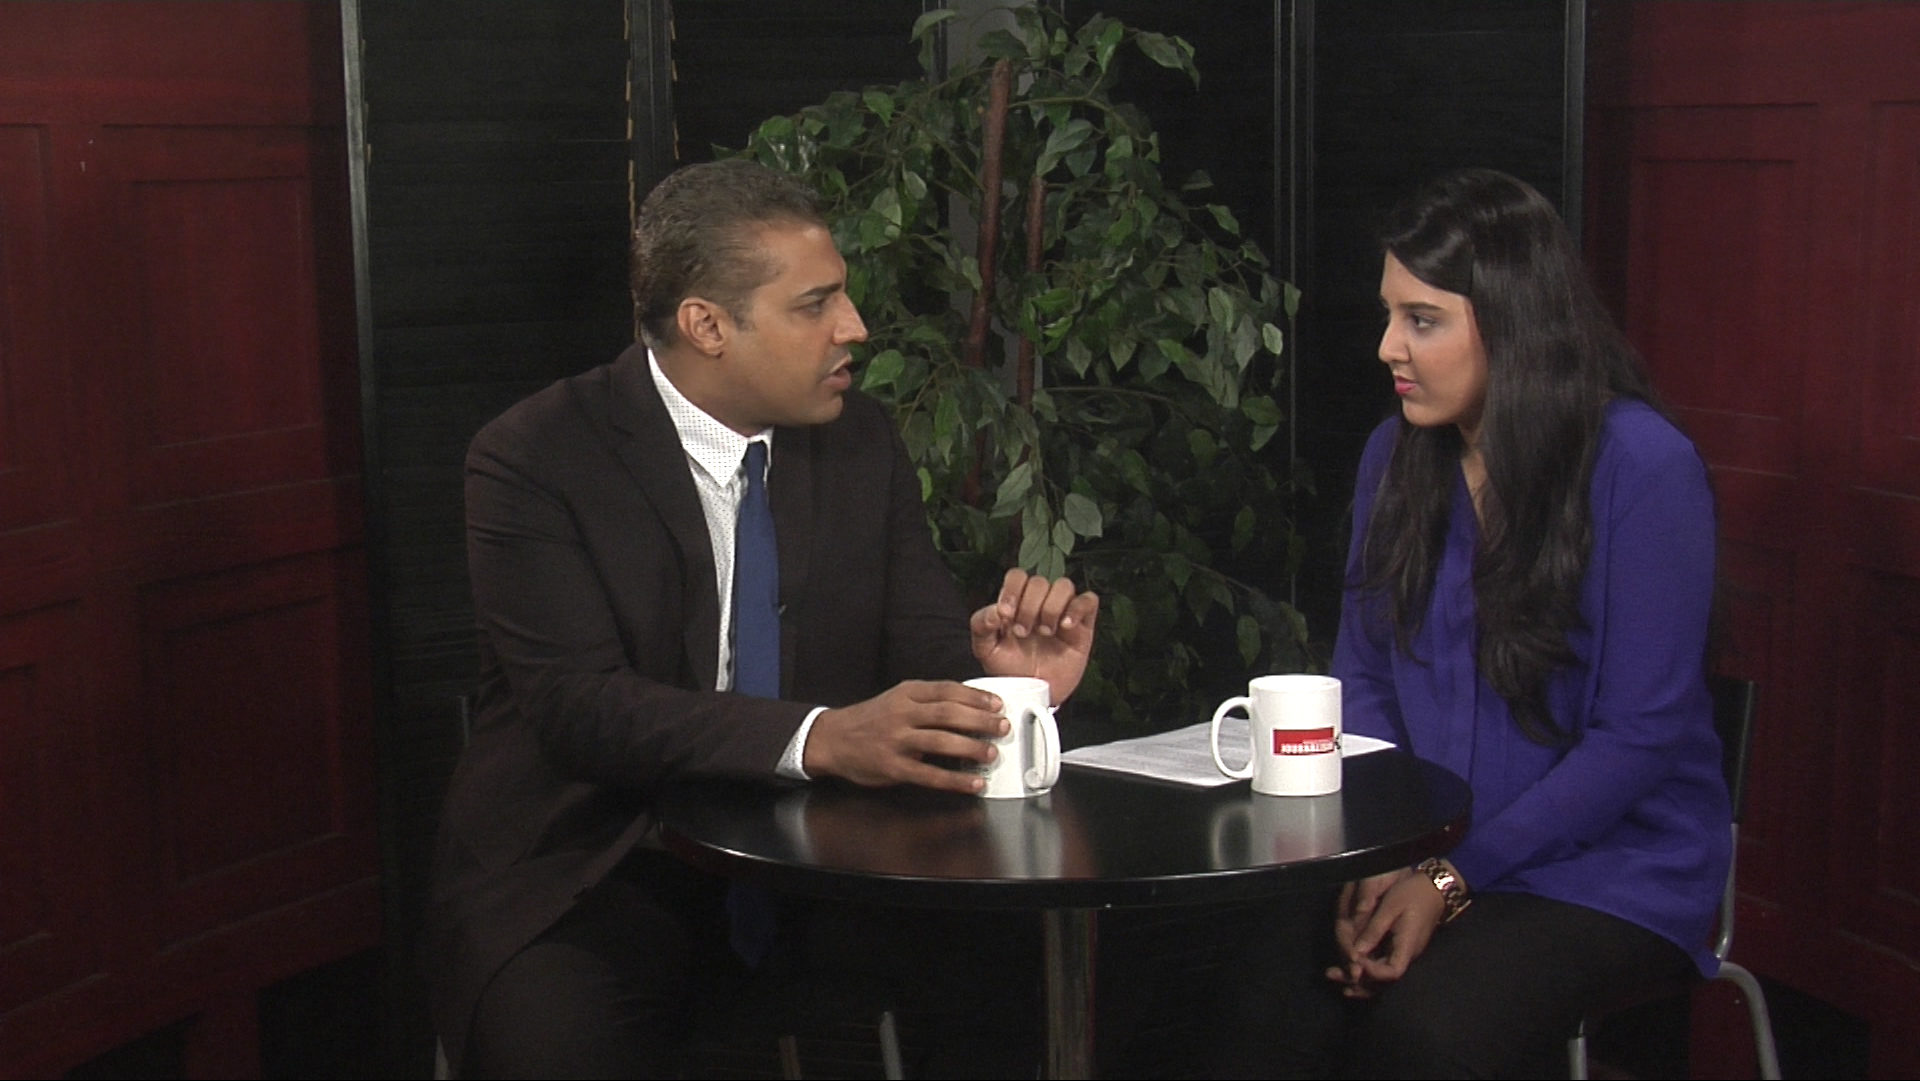 Fatima Syed interviews Mohamed Fahmy.